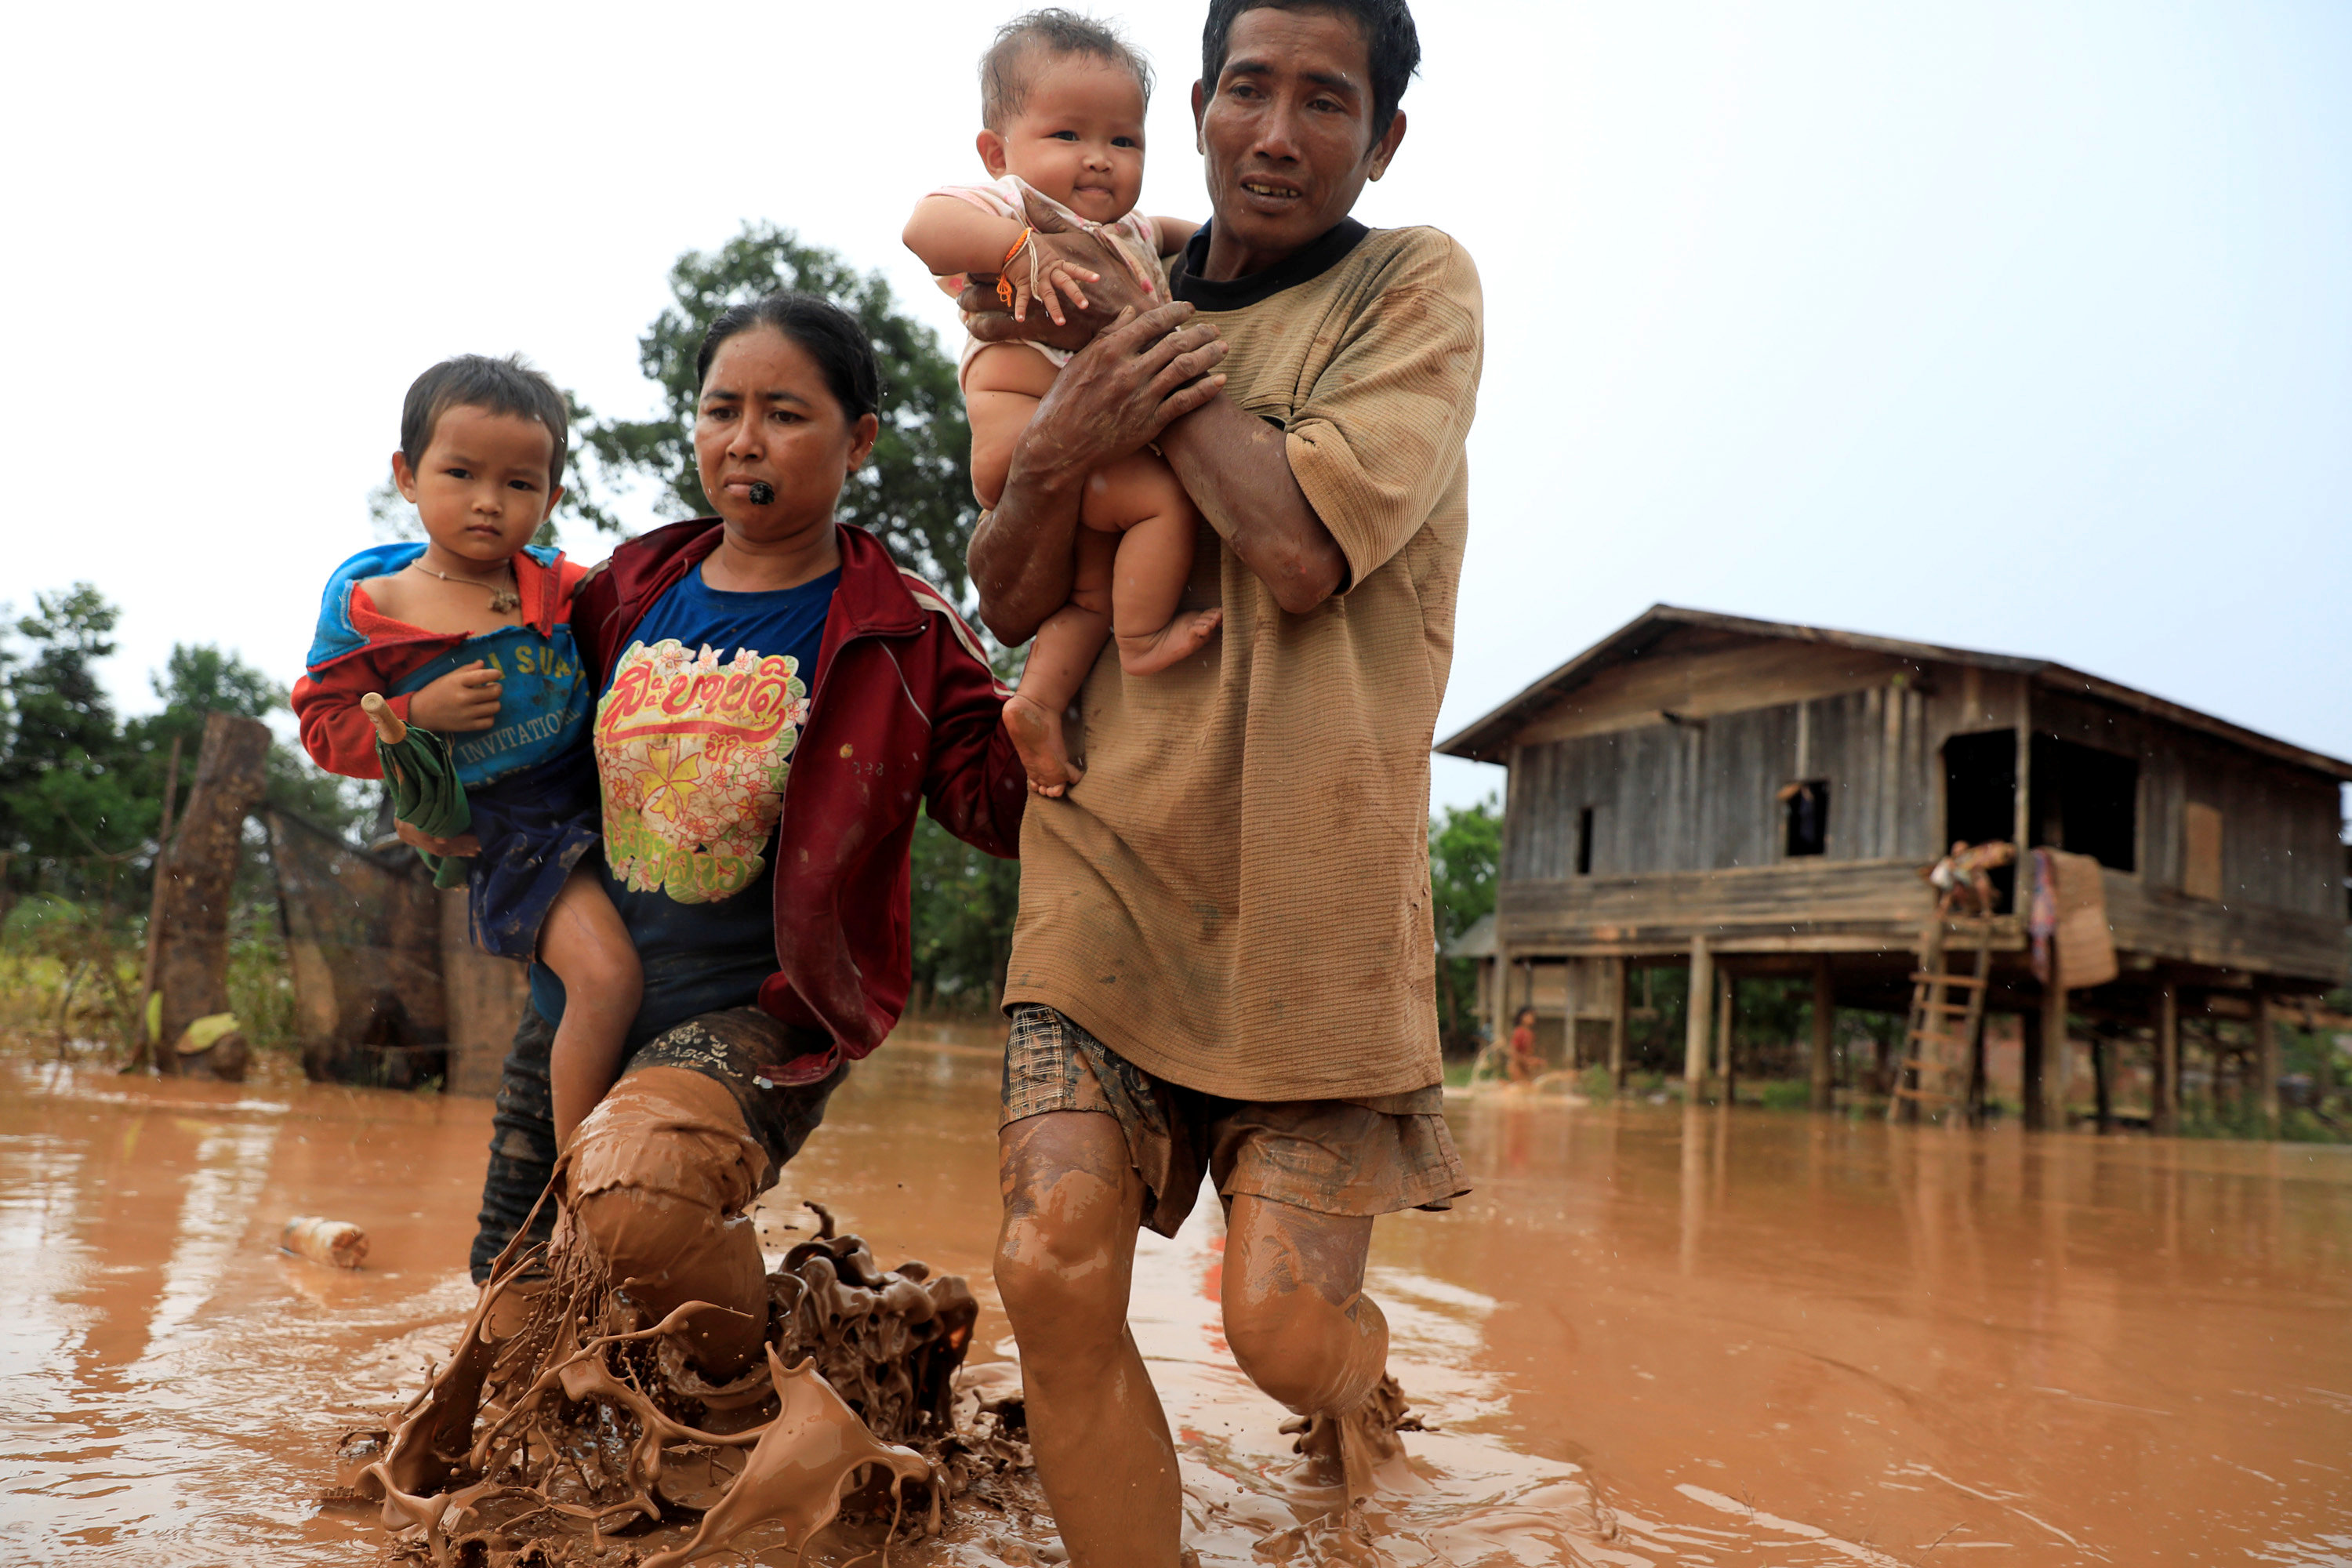 Parents carry their children as they leave their home during the flood after the Xepian-Xe Nam Noy hydropower dam collapsed in Attapeu province, Laos July 26, 2018. REUTERS/Soe Zeya Tun